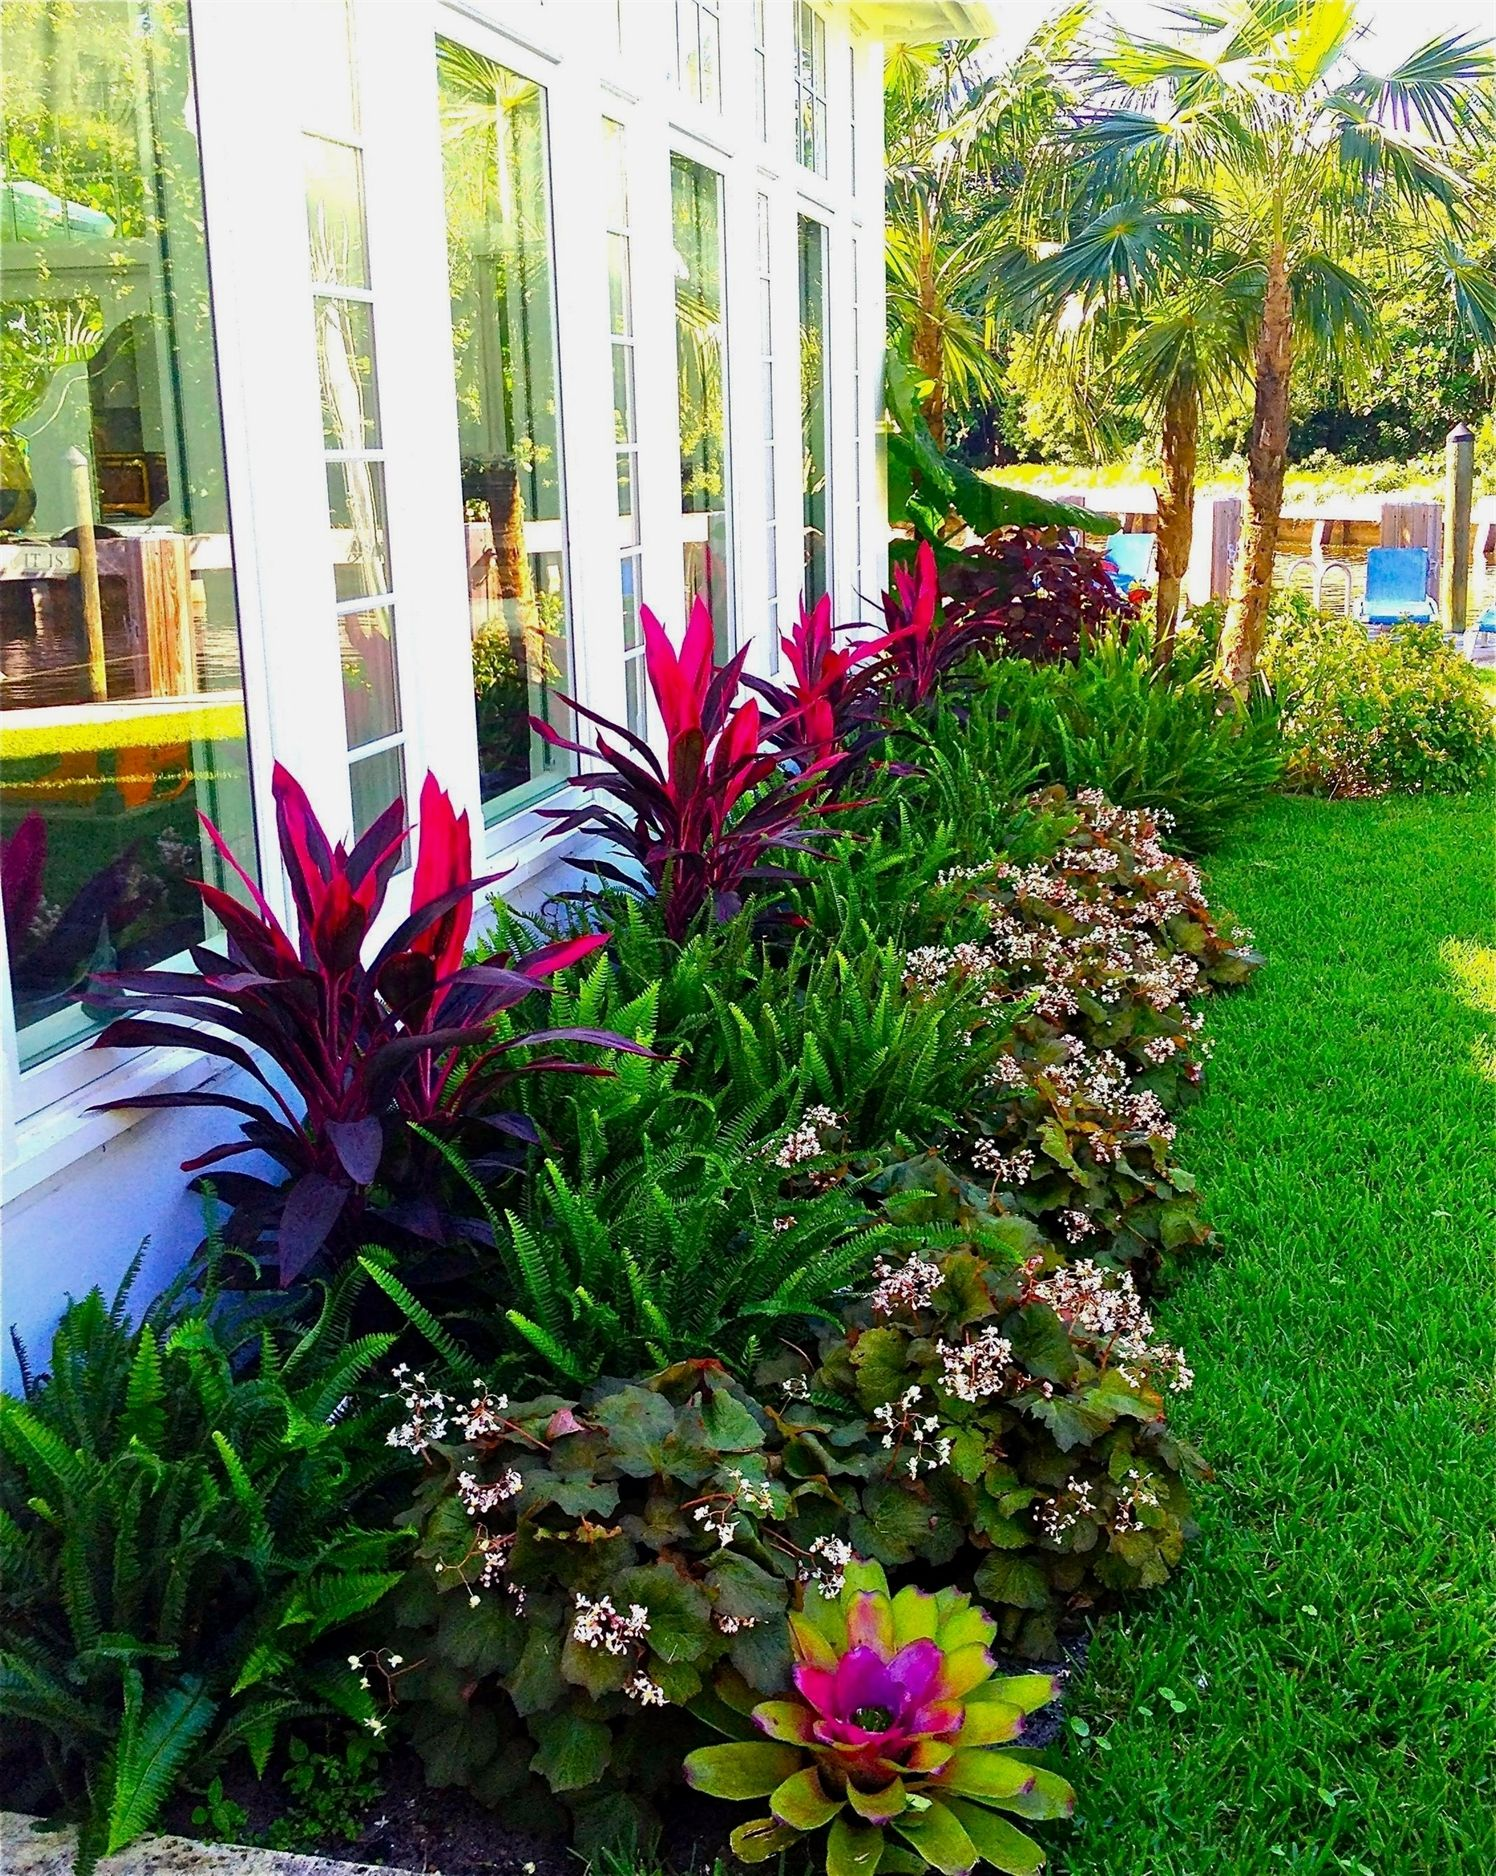 Landscaping Front Yard #Landscapingprojects #Landscapingfrontyard #Landscapingideas